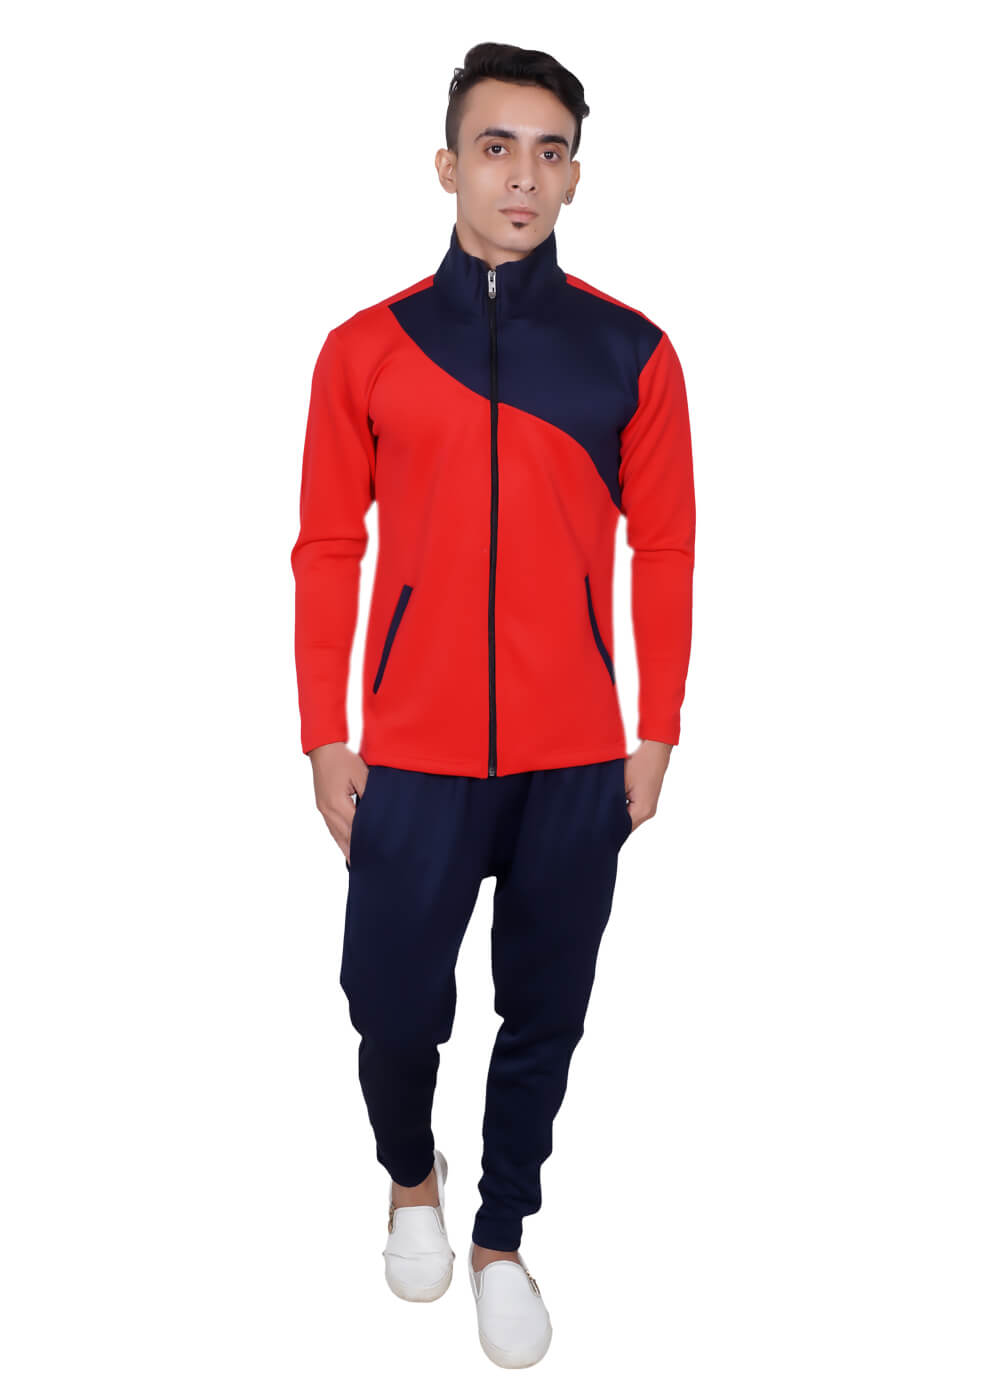 Cheap Tracksuits Manufacturers in Raipur